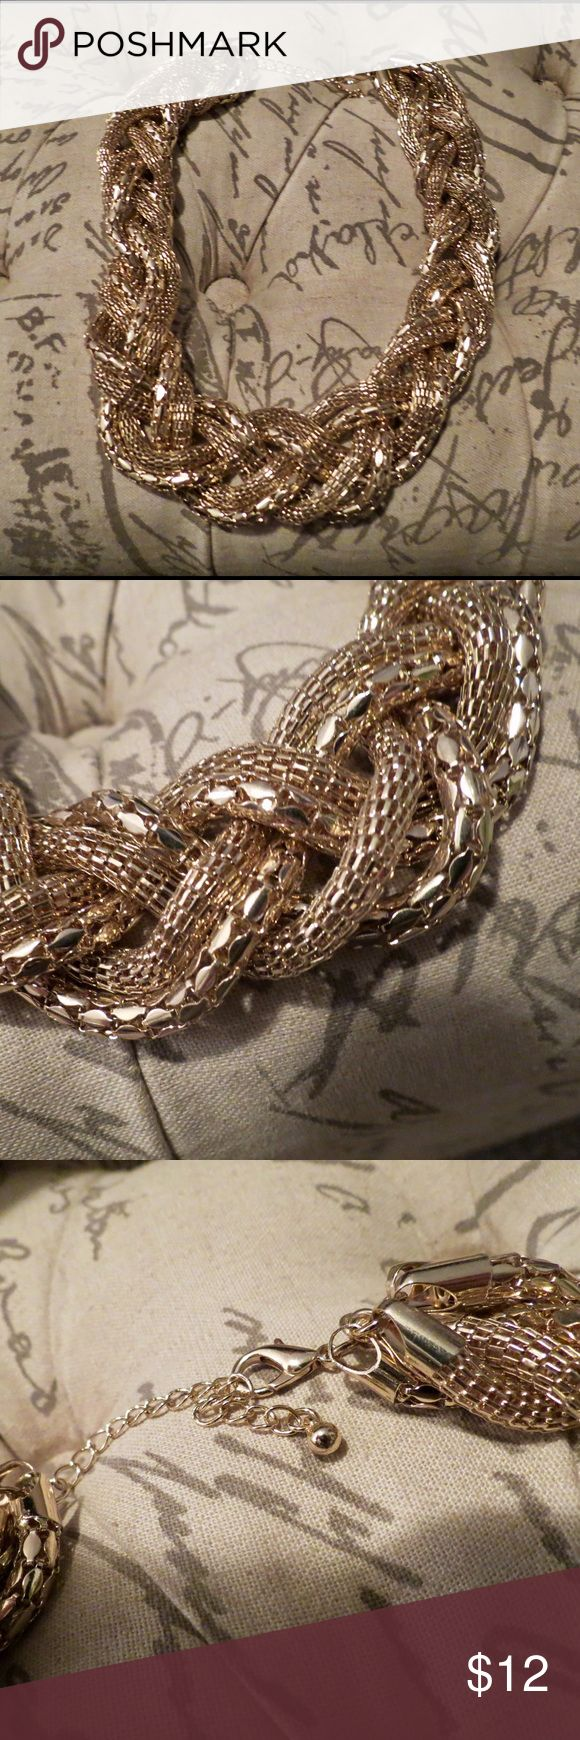 NWOT Zara Chunky Gold Necklace NWOT, never been worn! Zara Jewelry Necklaces